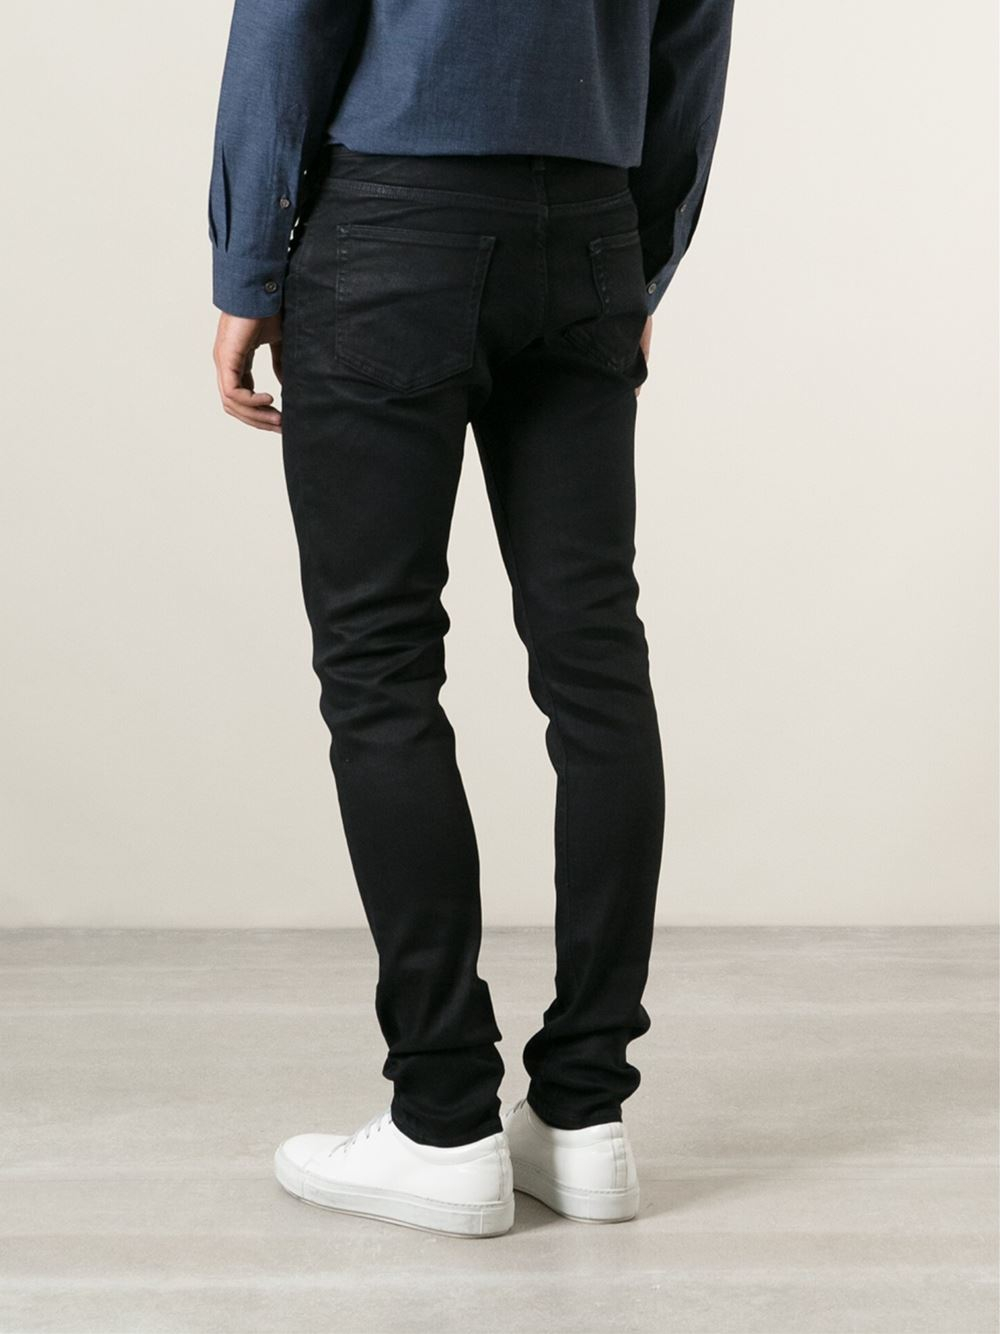 Mens acne jeans on sale – Global fashion jeans models